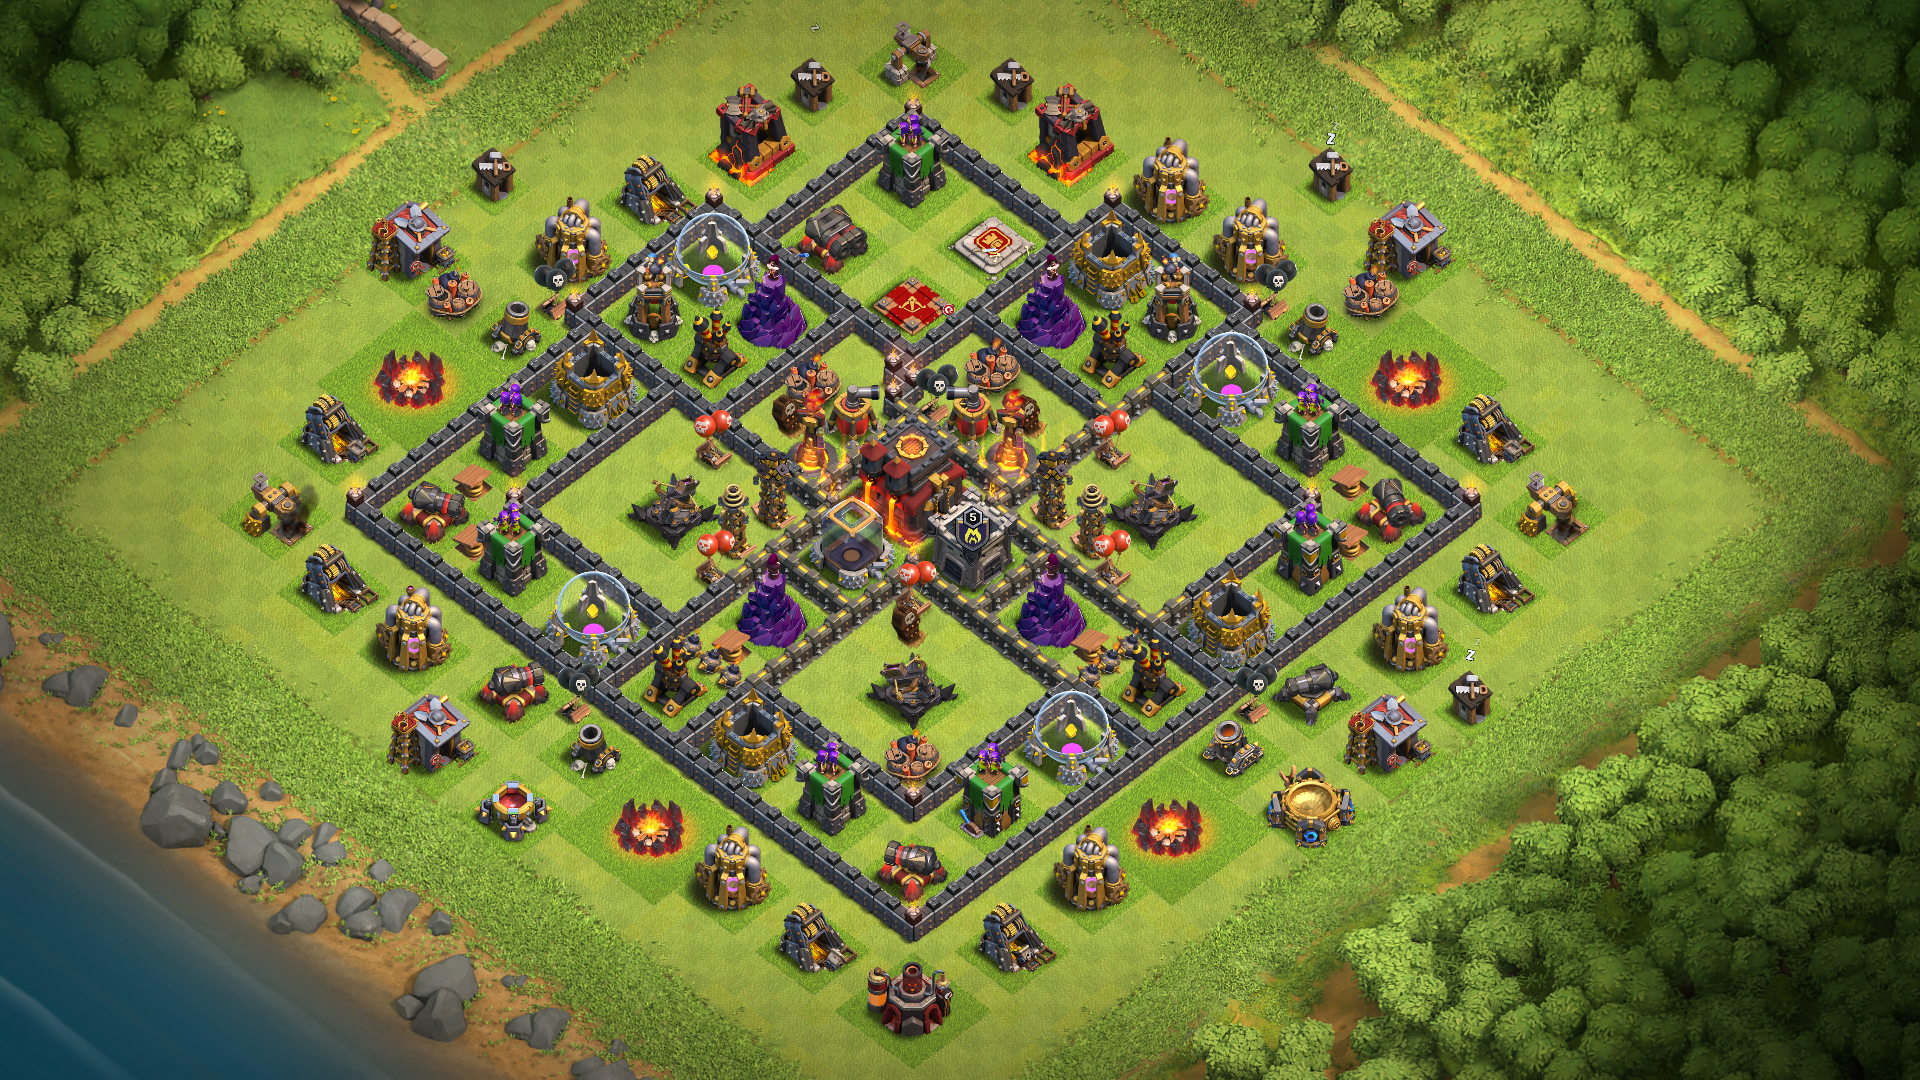 NEW Clash of Clans TH10 Inferno & X-bows Island base 2018